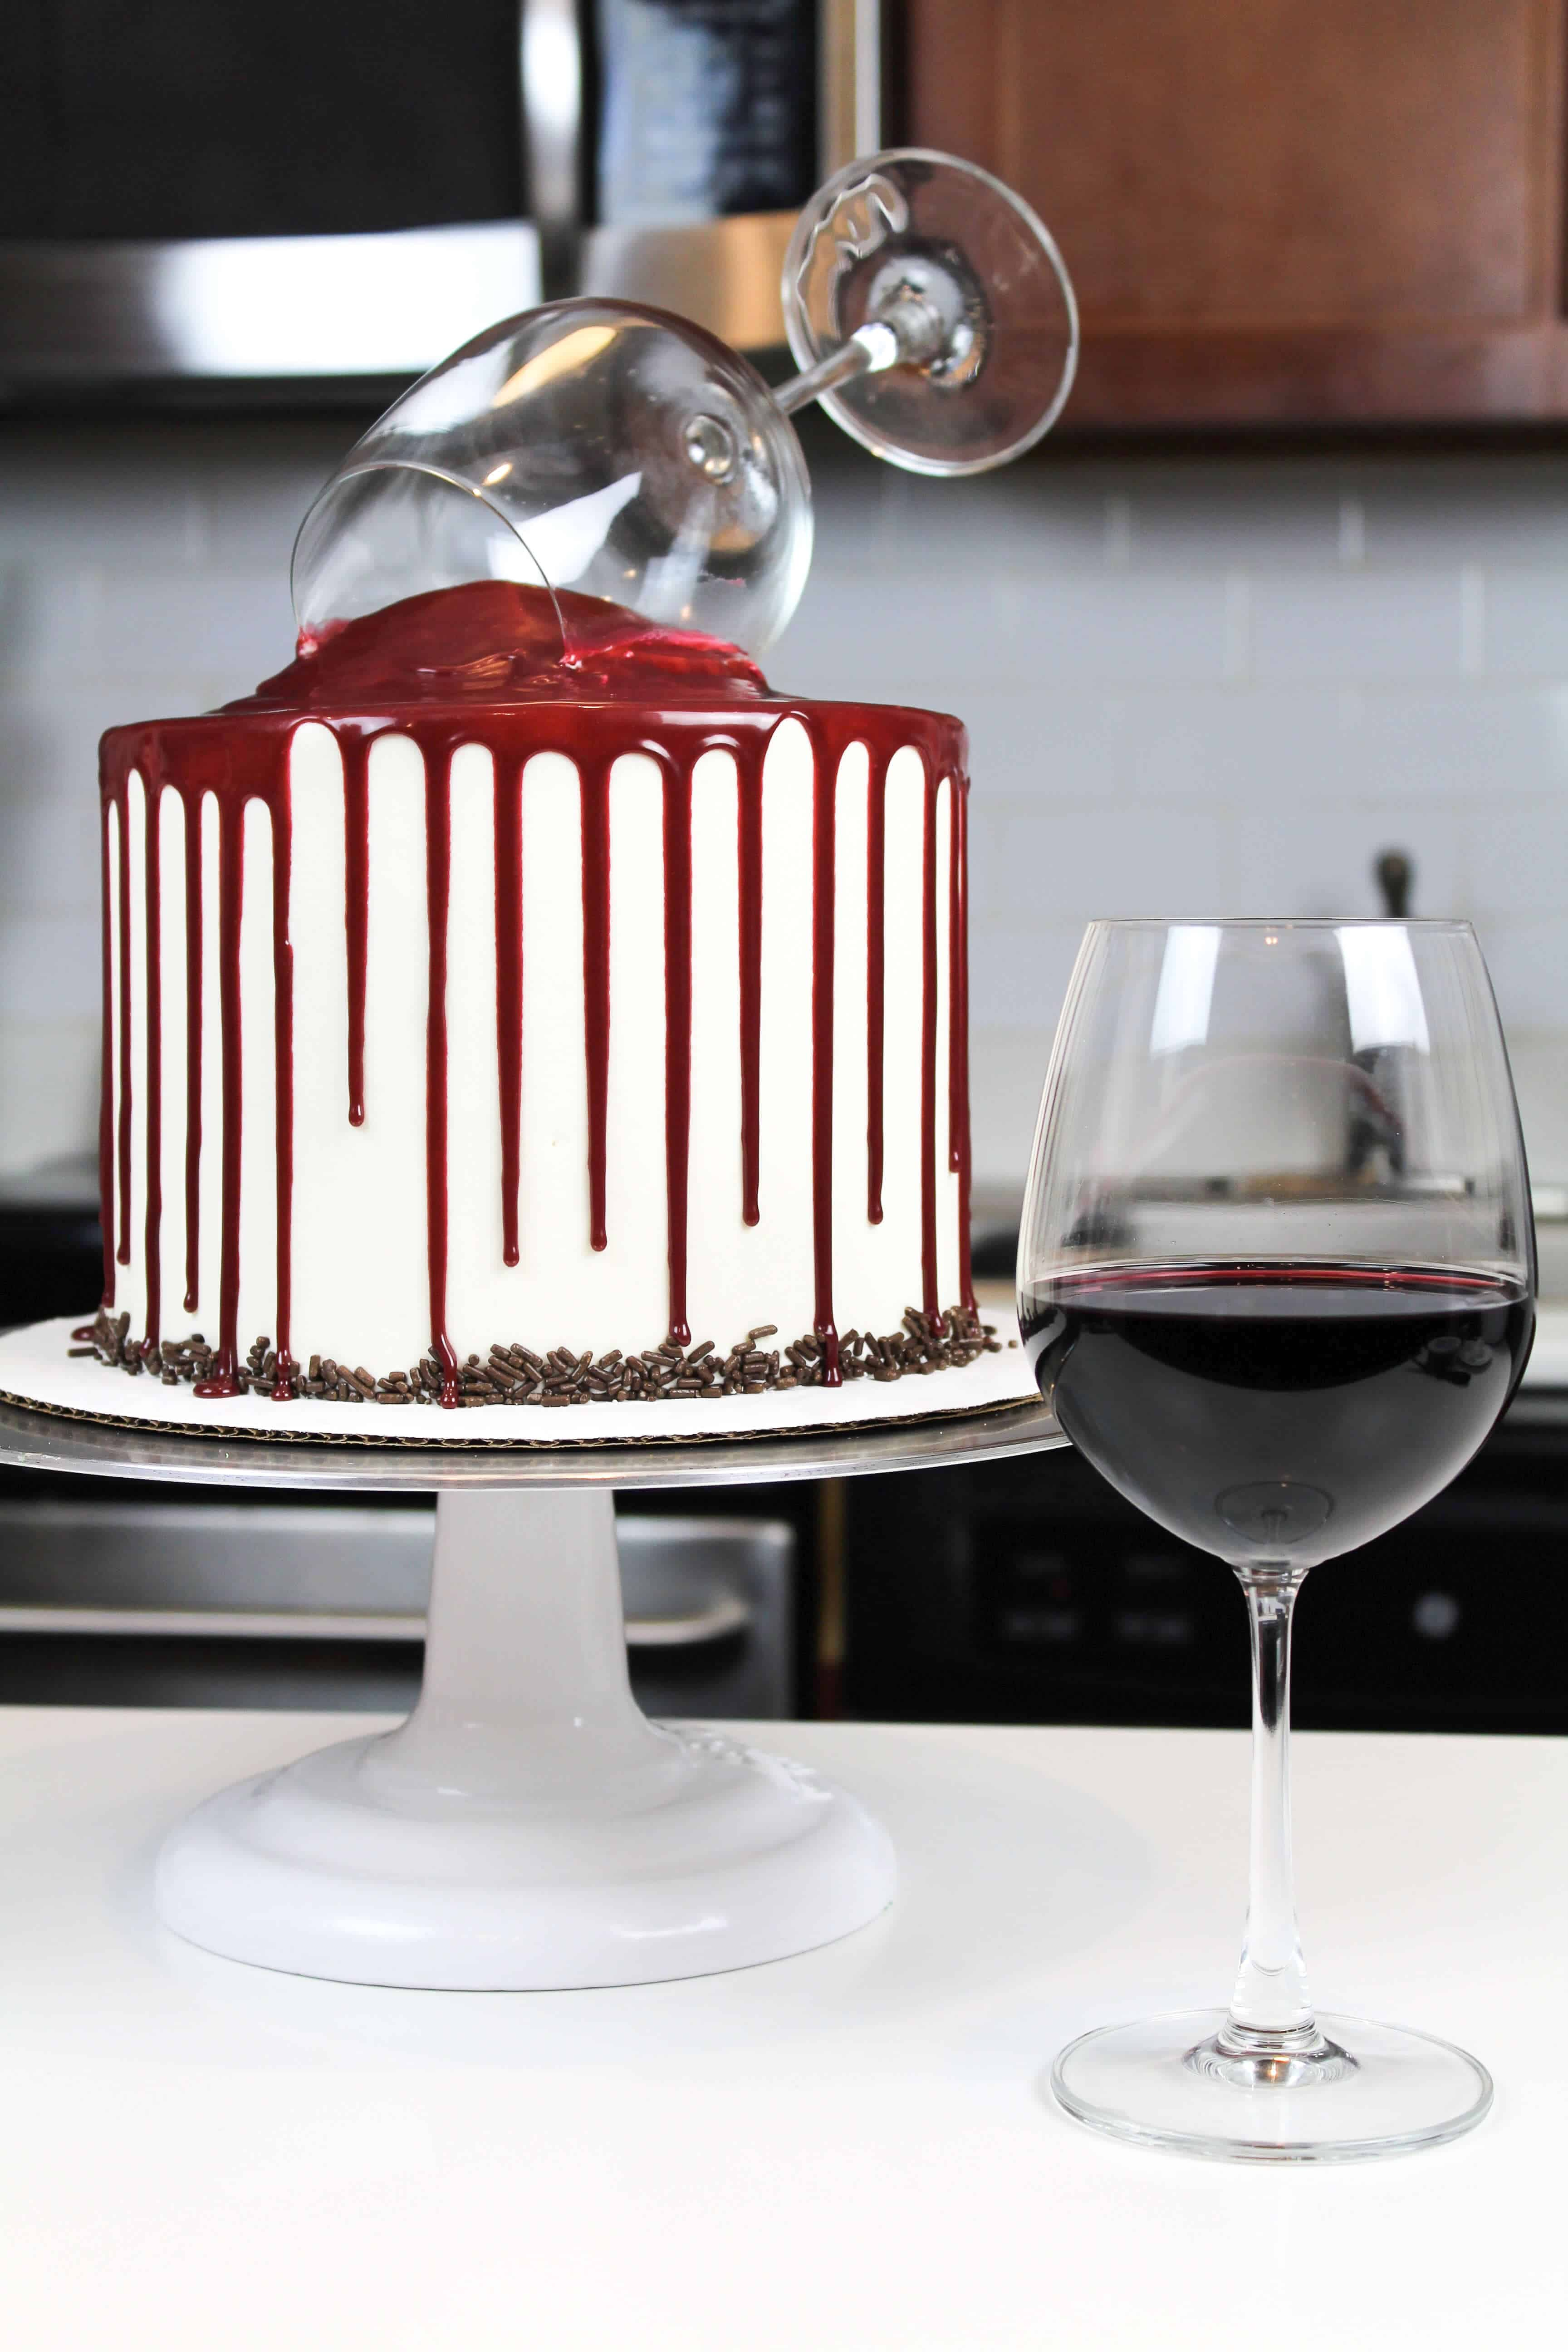 Image of a red wine chocolate cake next to a glass of red wine